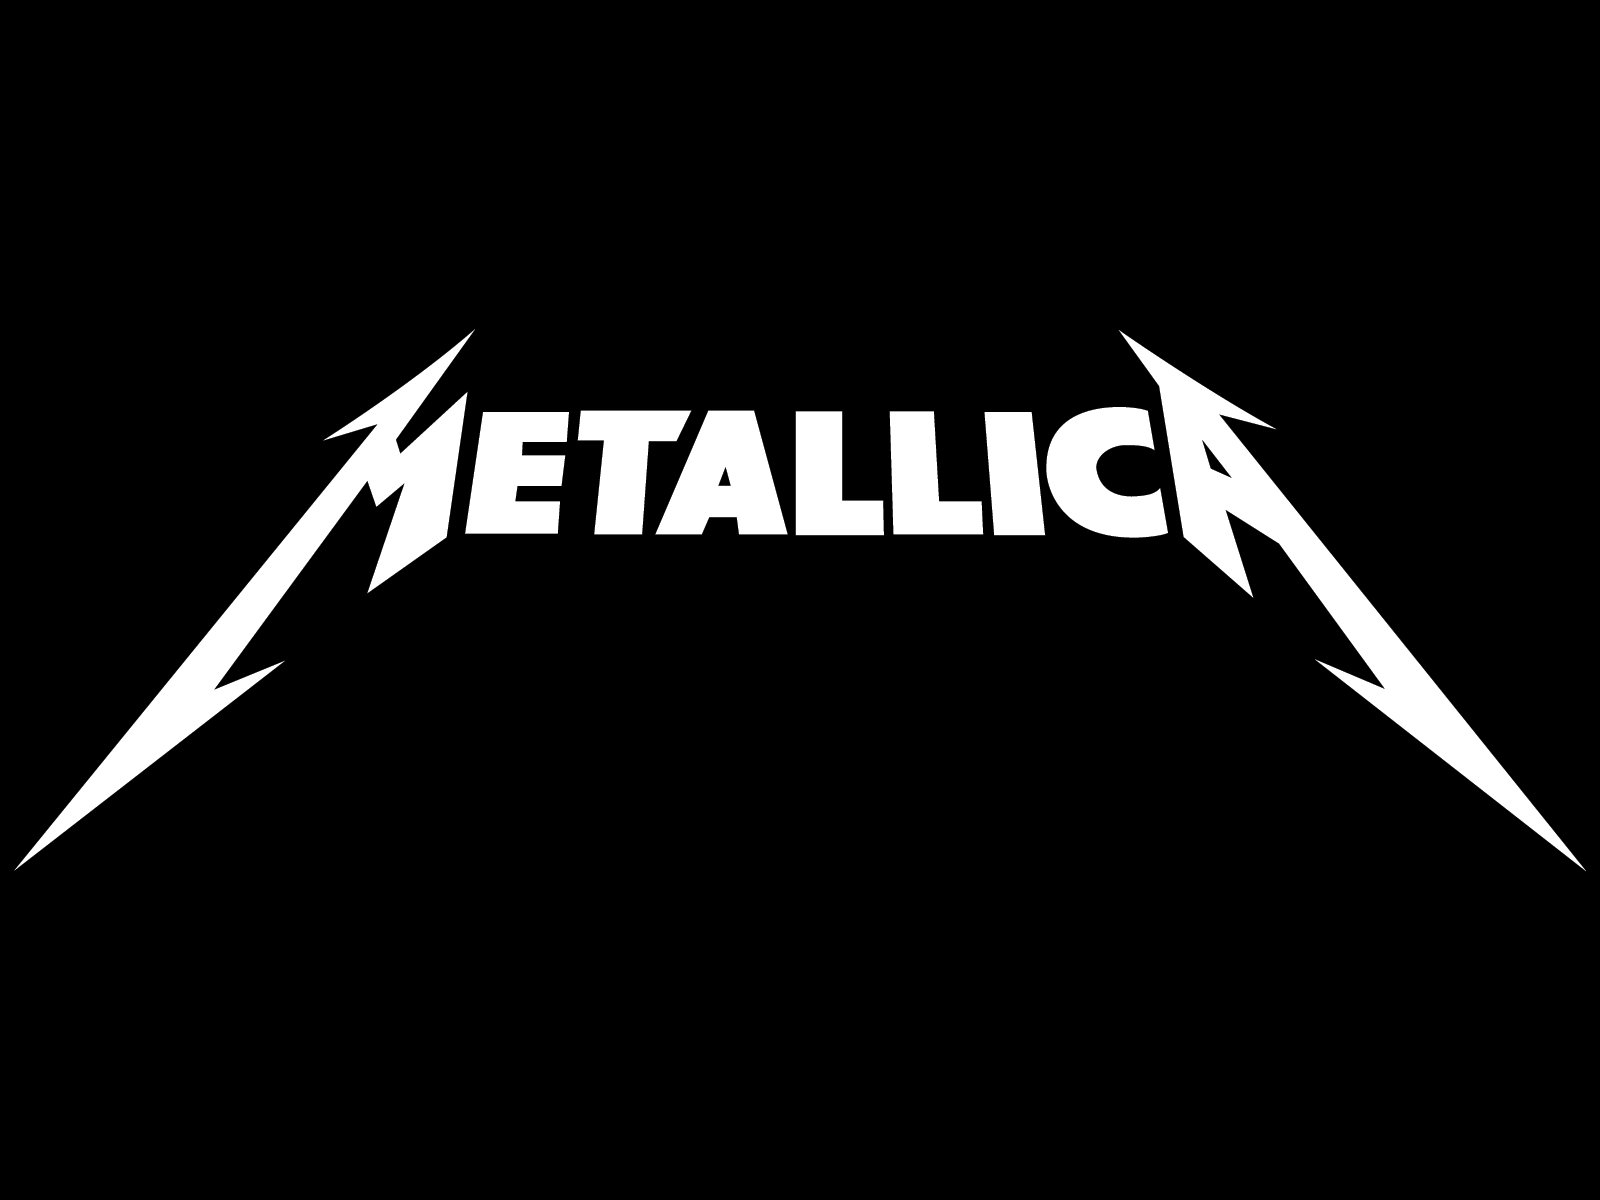 74 Metallica Hd Wallpapers Background Images Wallpaper Abyss